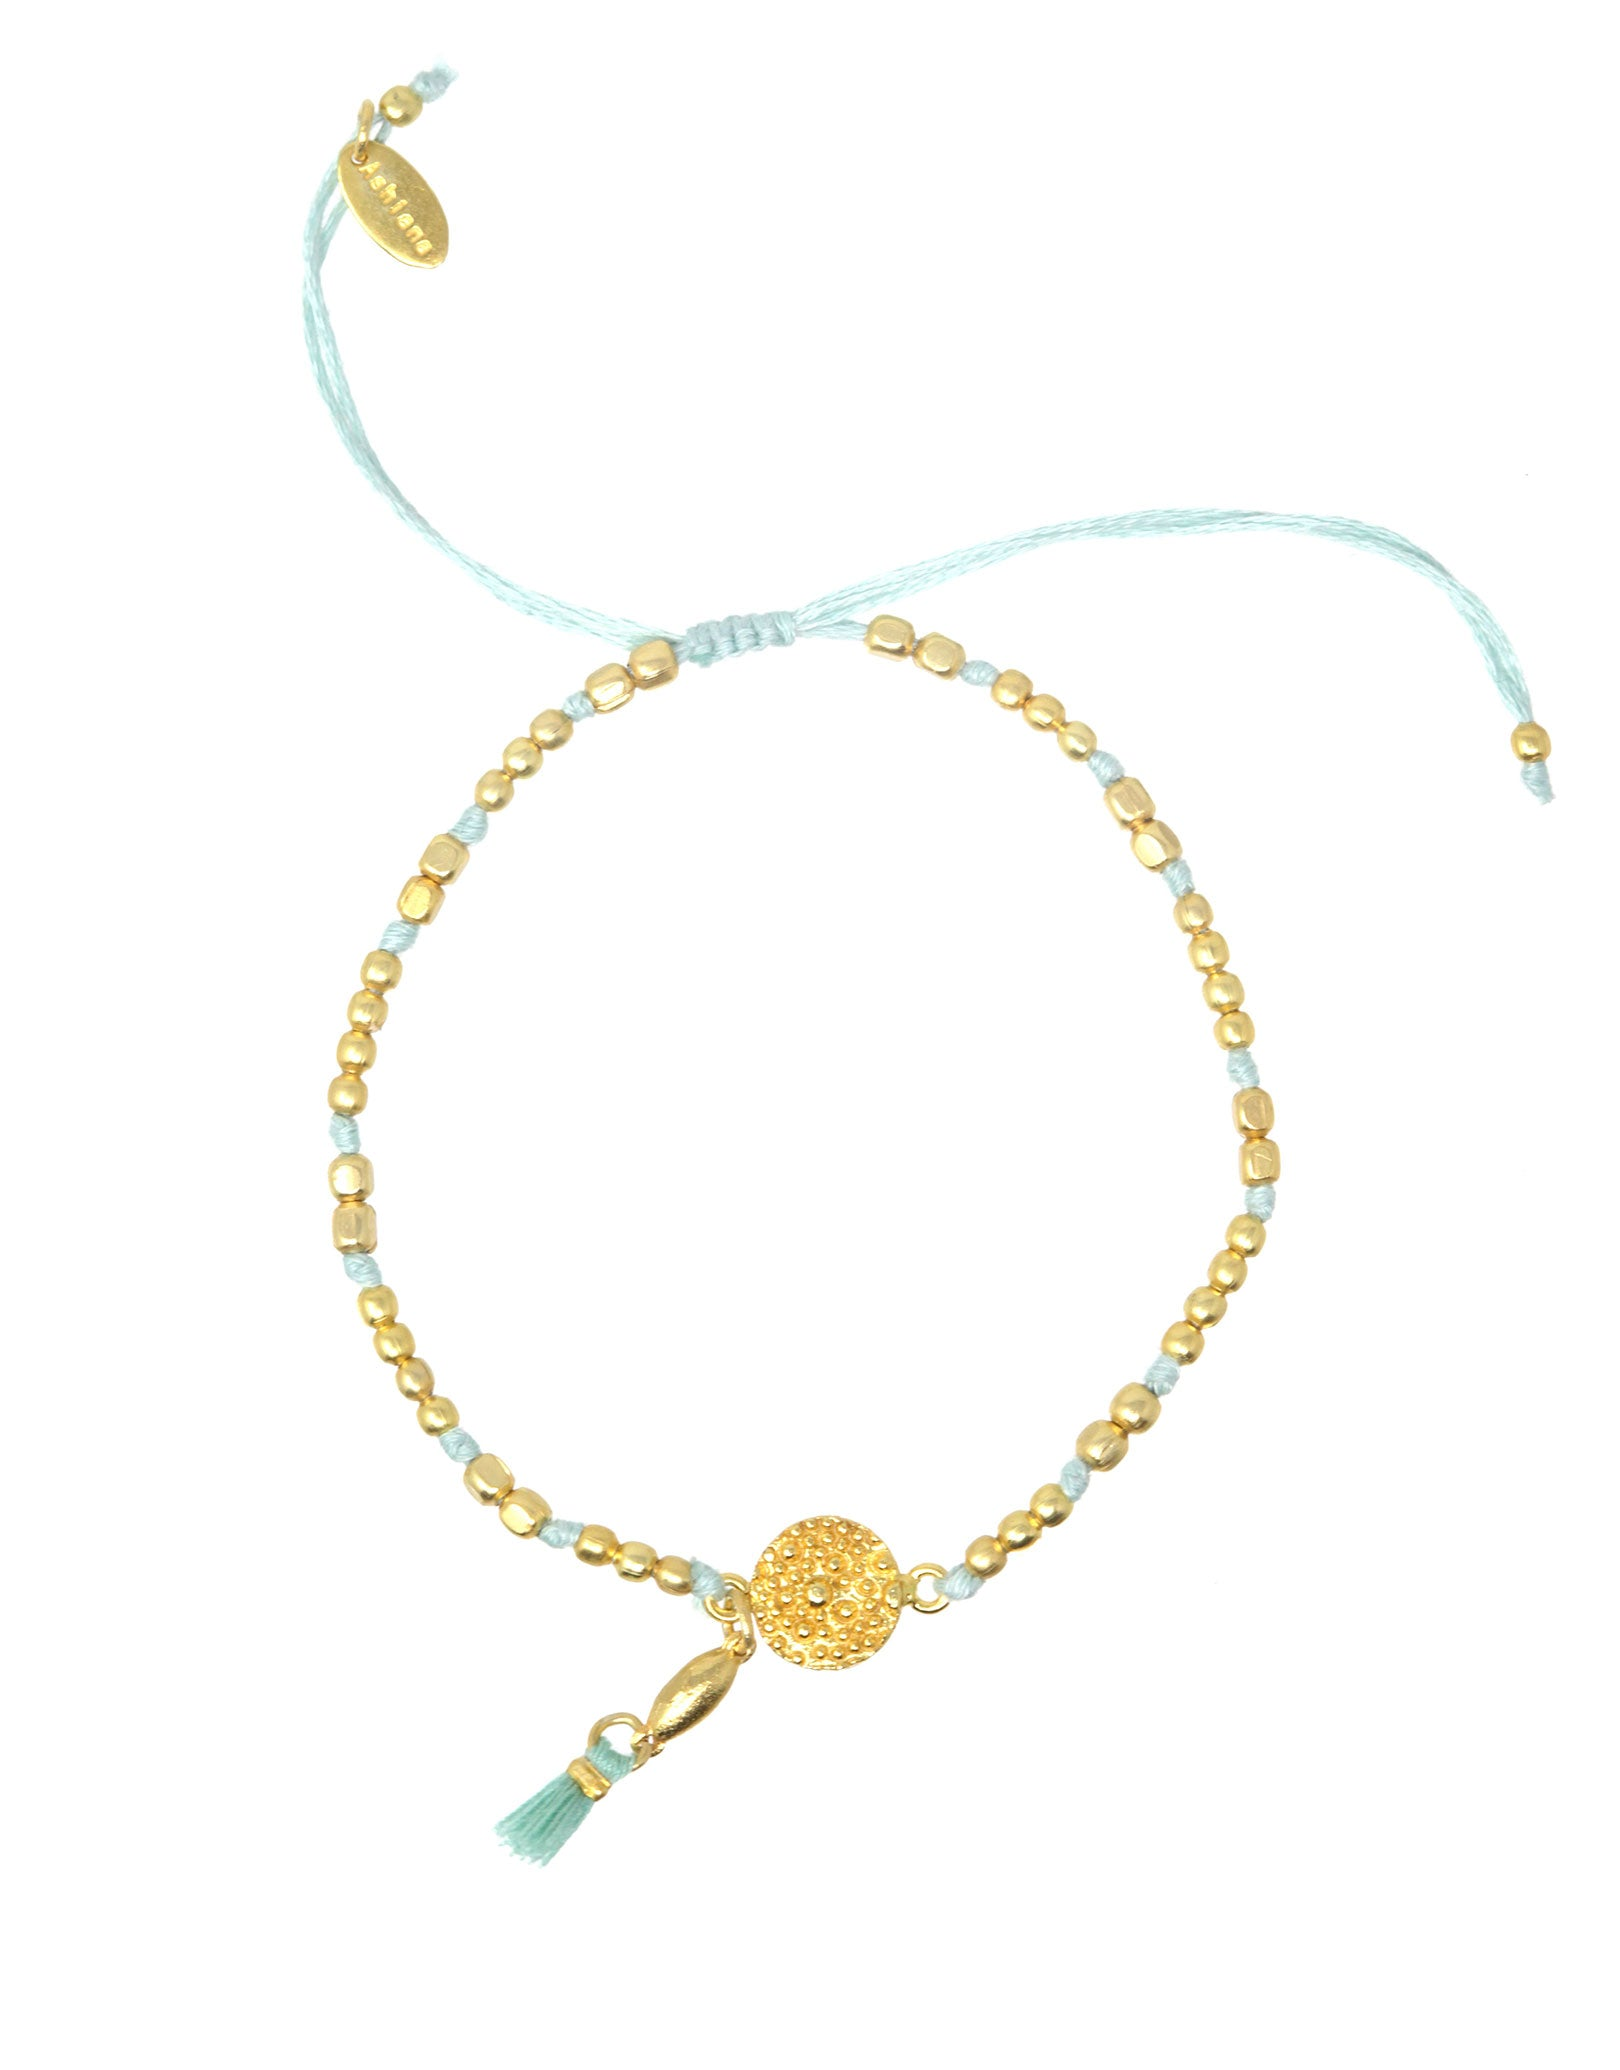 Image of Ashiana Bracelet - Mint